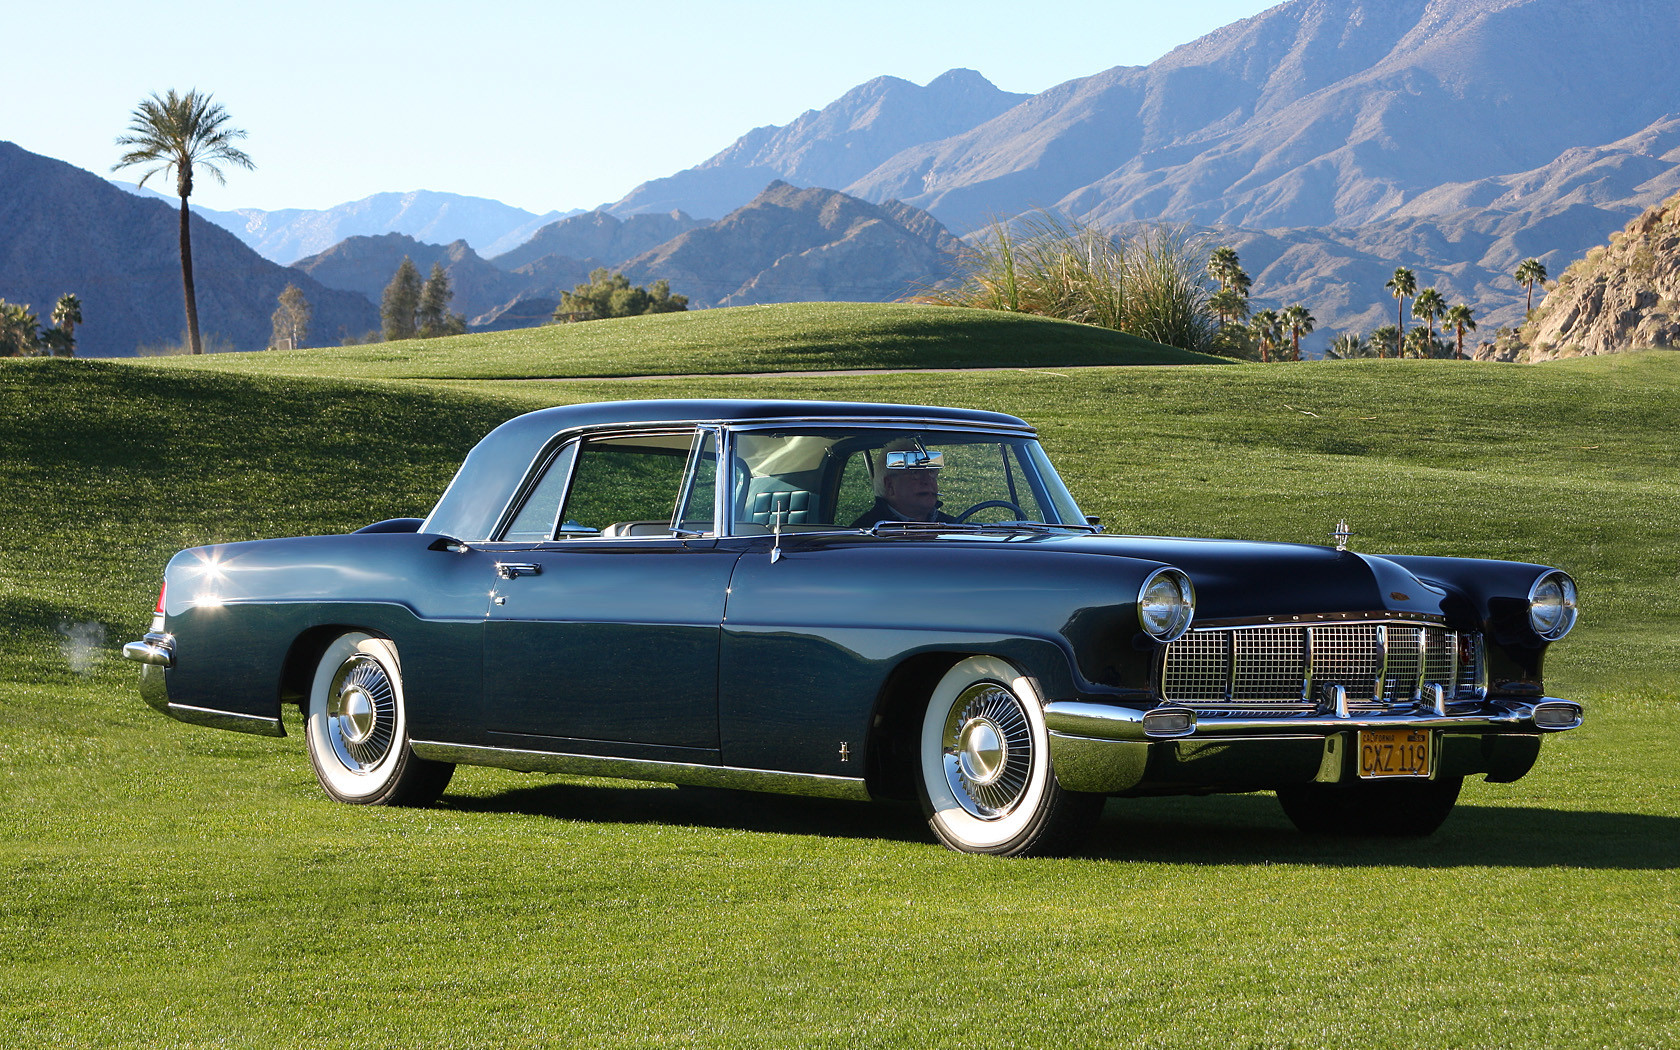 The 1956 Continental Mark II is equal parts boxy design with smooth, rounded curves. The result is one of the most elegant Lincoln automotive designs ever.